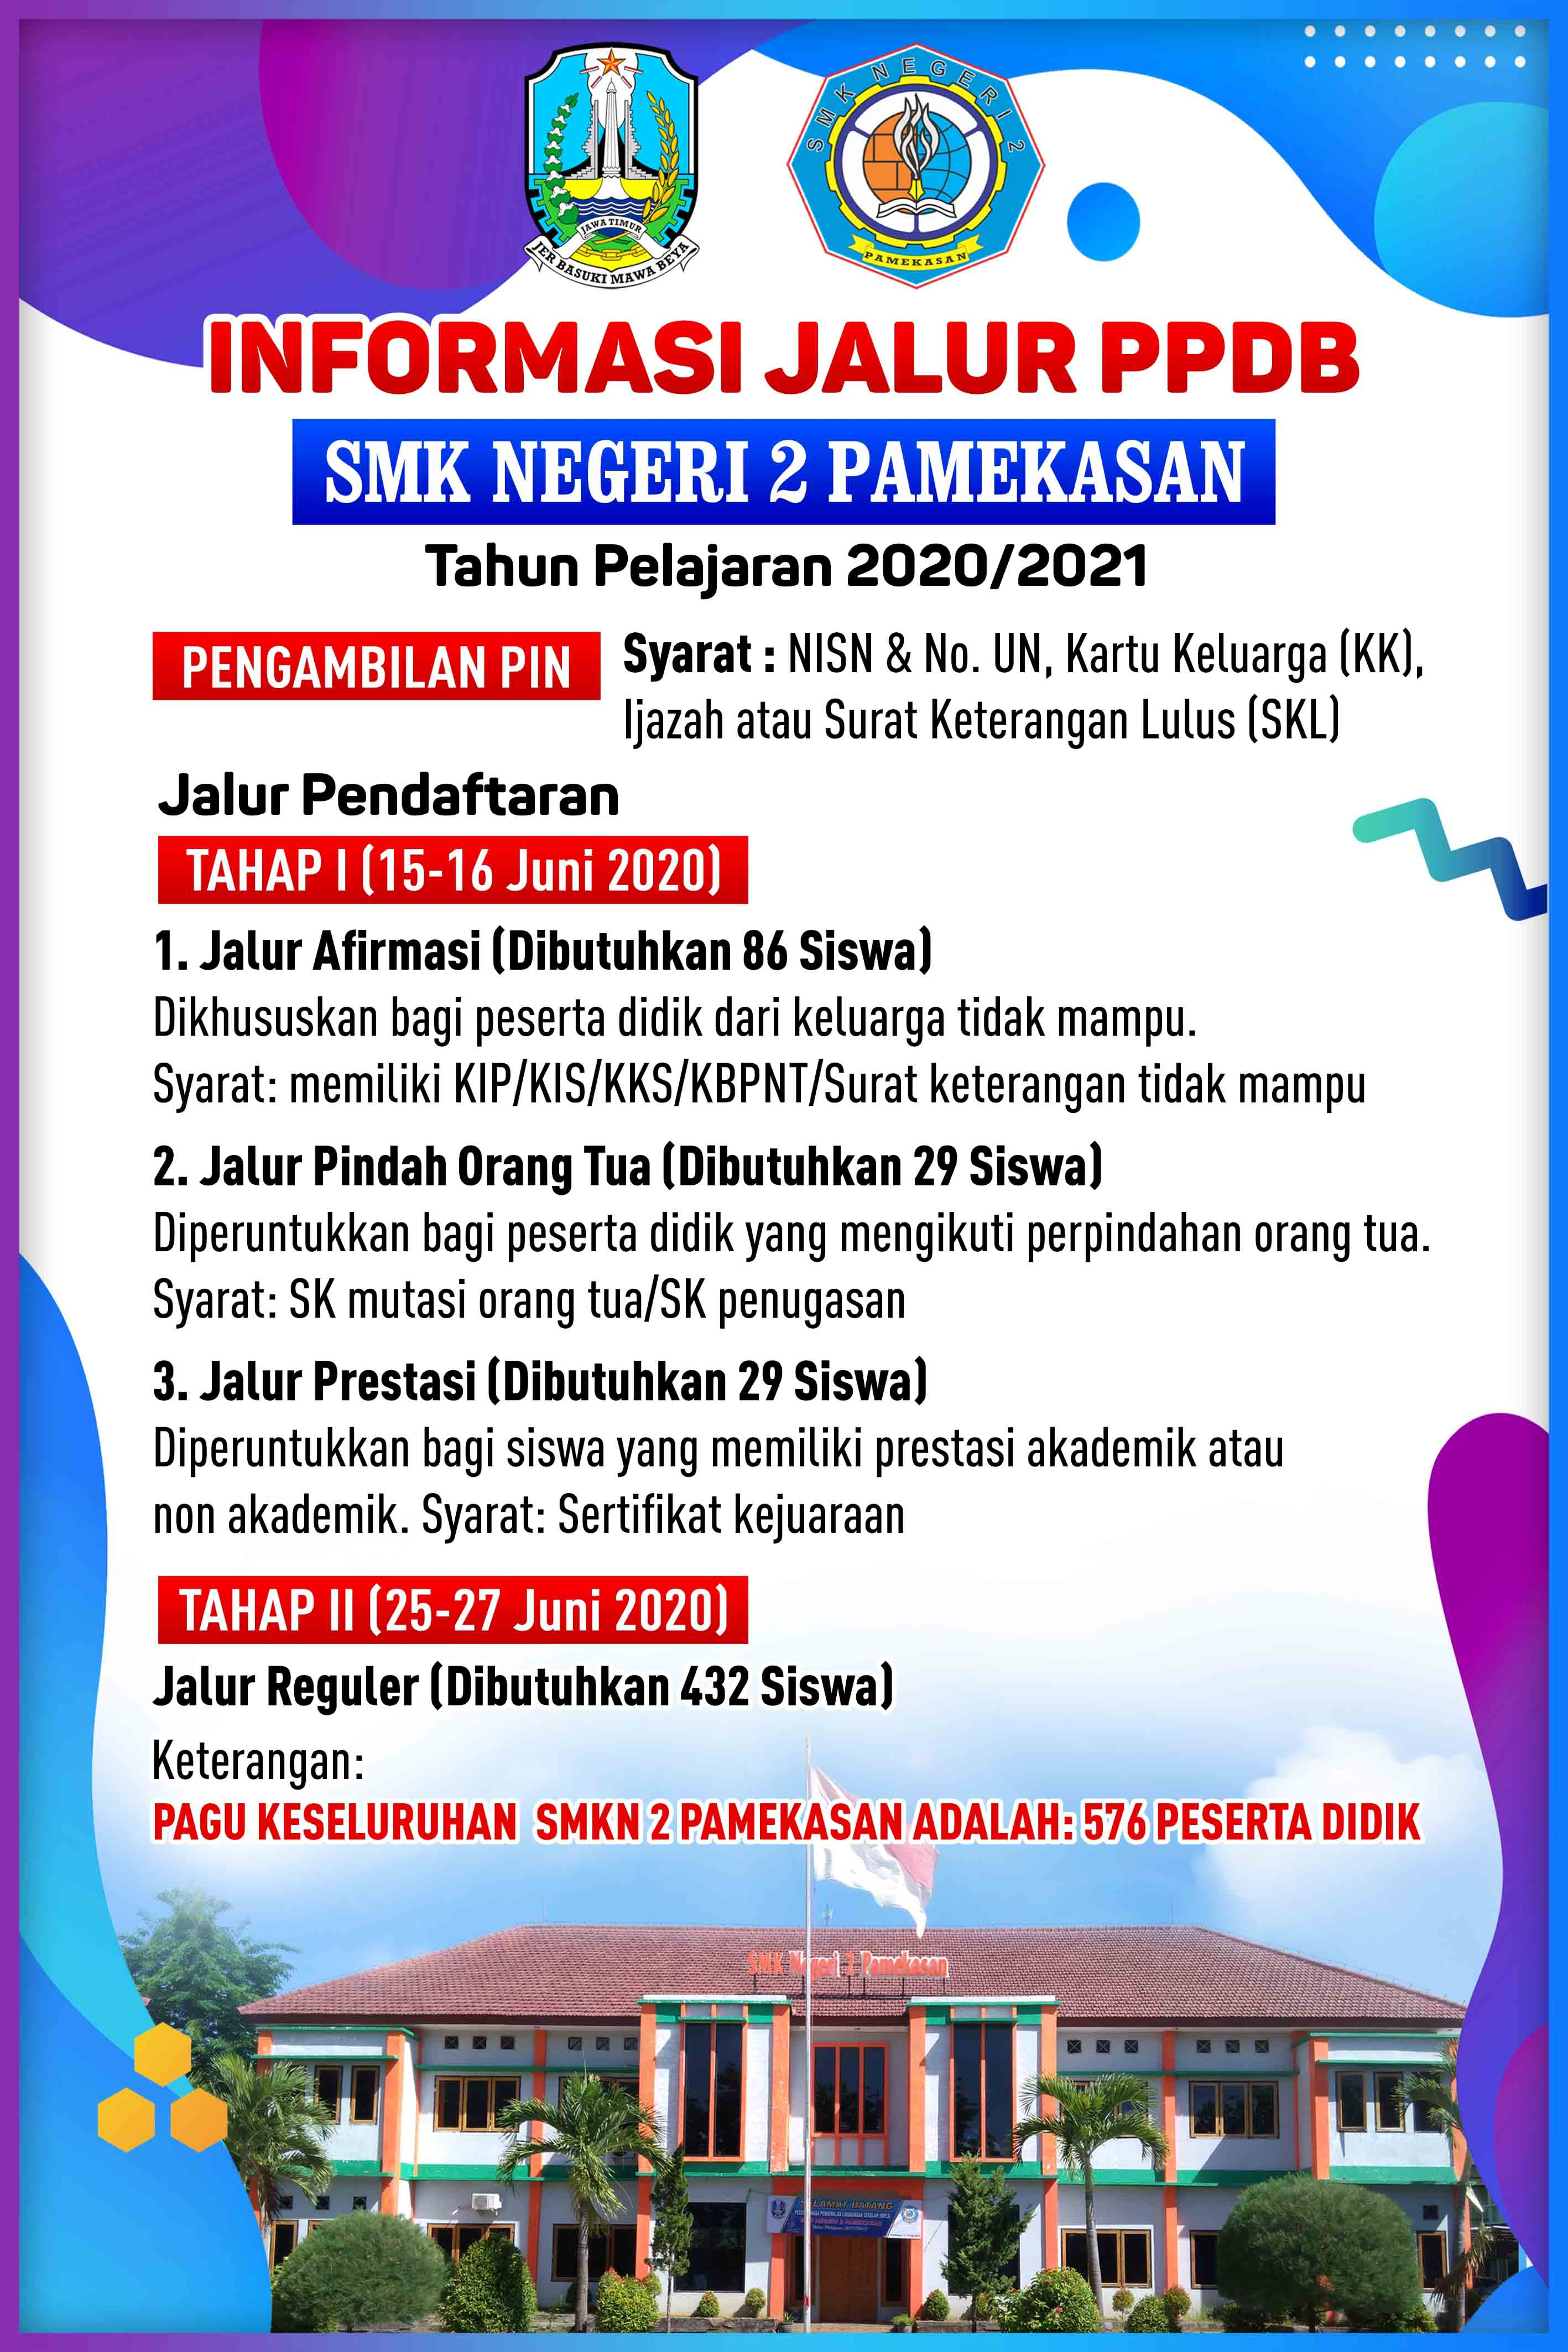 1-SMKN 2 PPDB_2